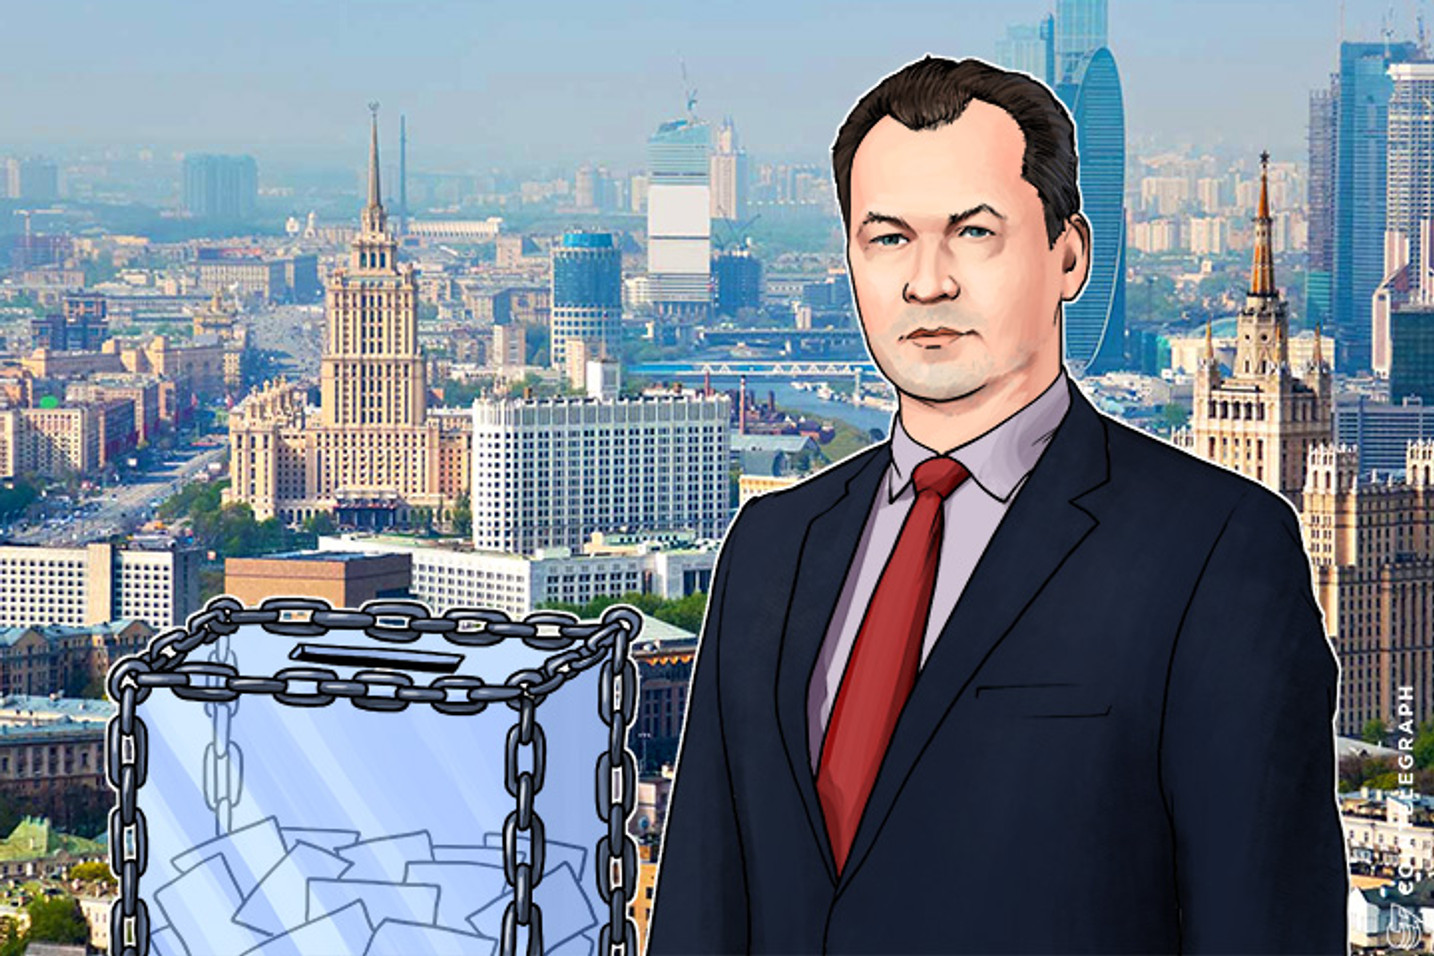 Russia Tests Blockchain Voting, Plans to Launch It in 2017